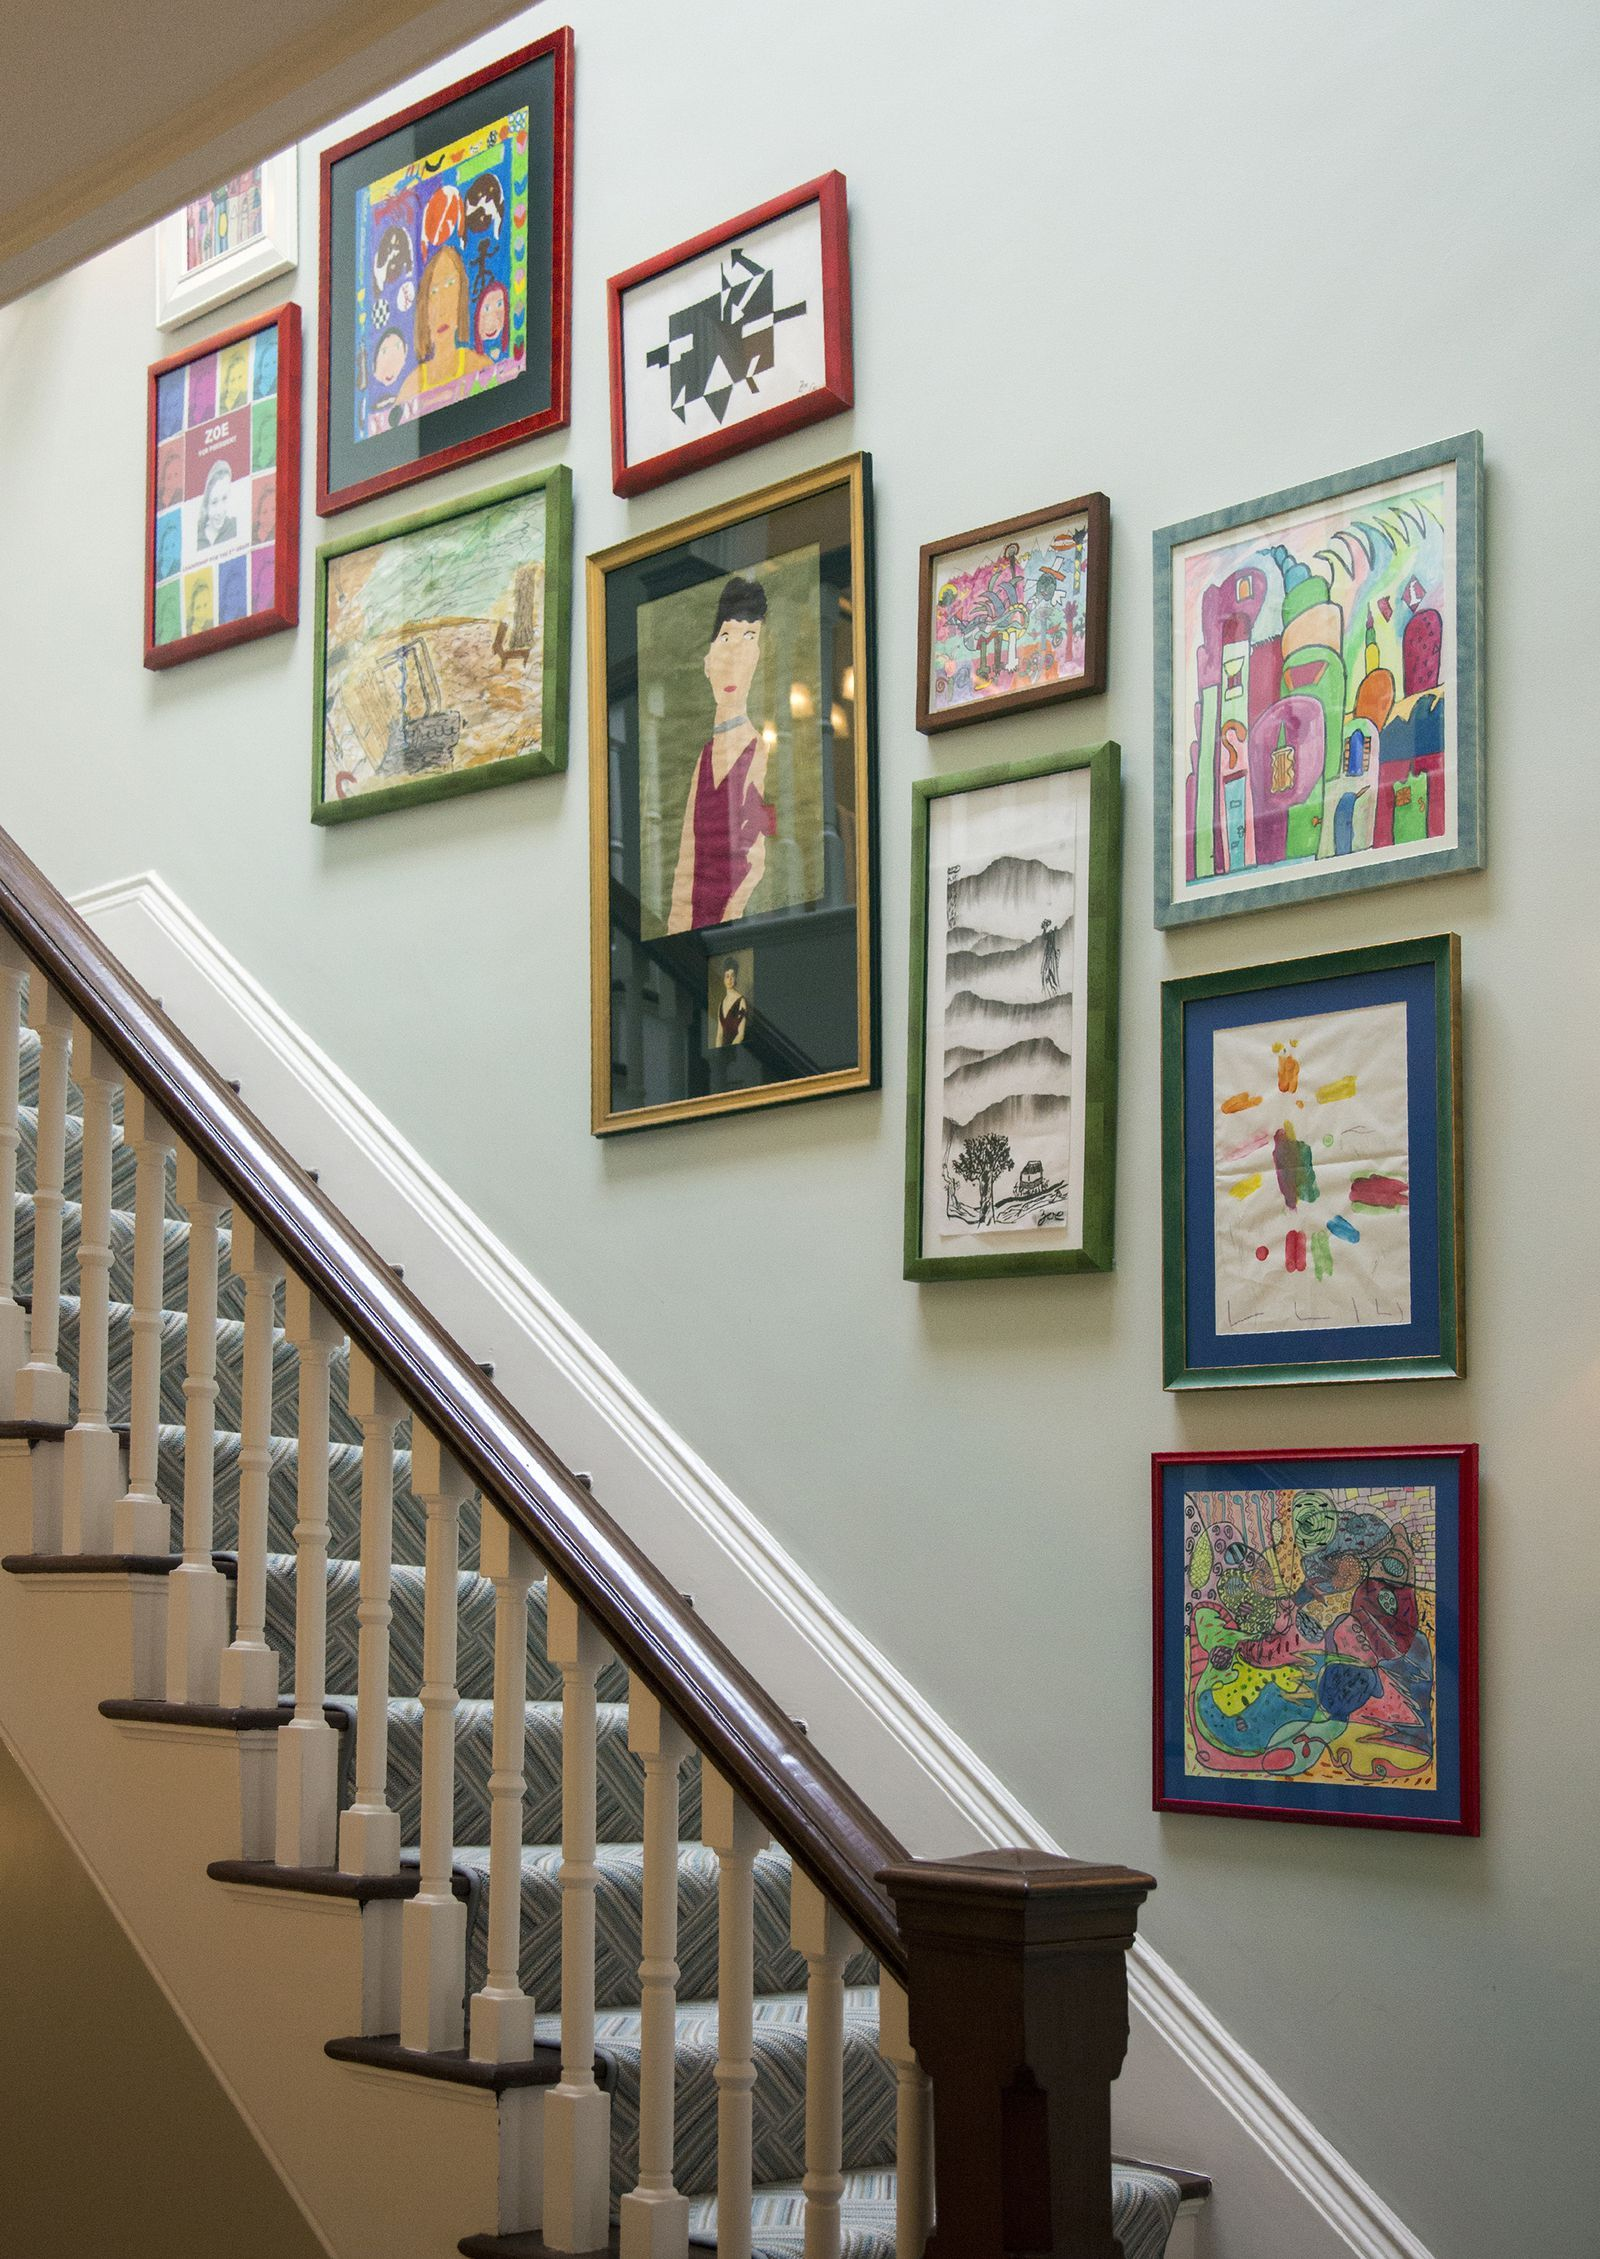 27 Stylish Staircase Decorating Ideas | Staircase wall ... on Creative Staircase Wall Decorating Ideas  id=38888